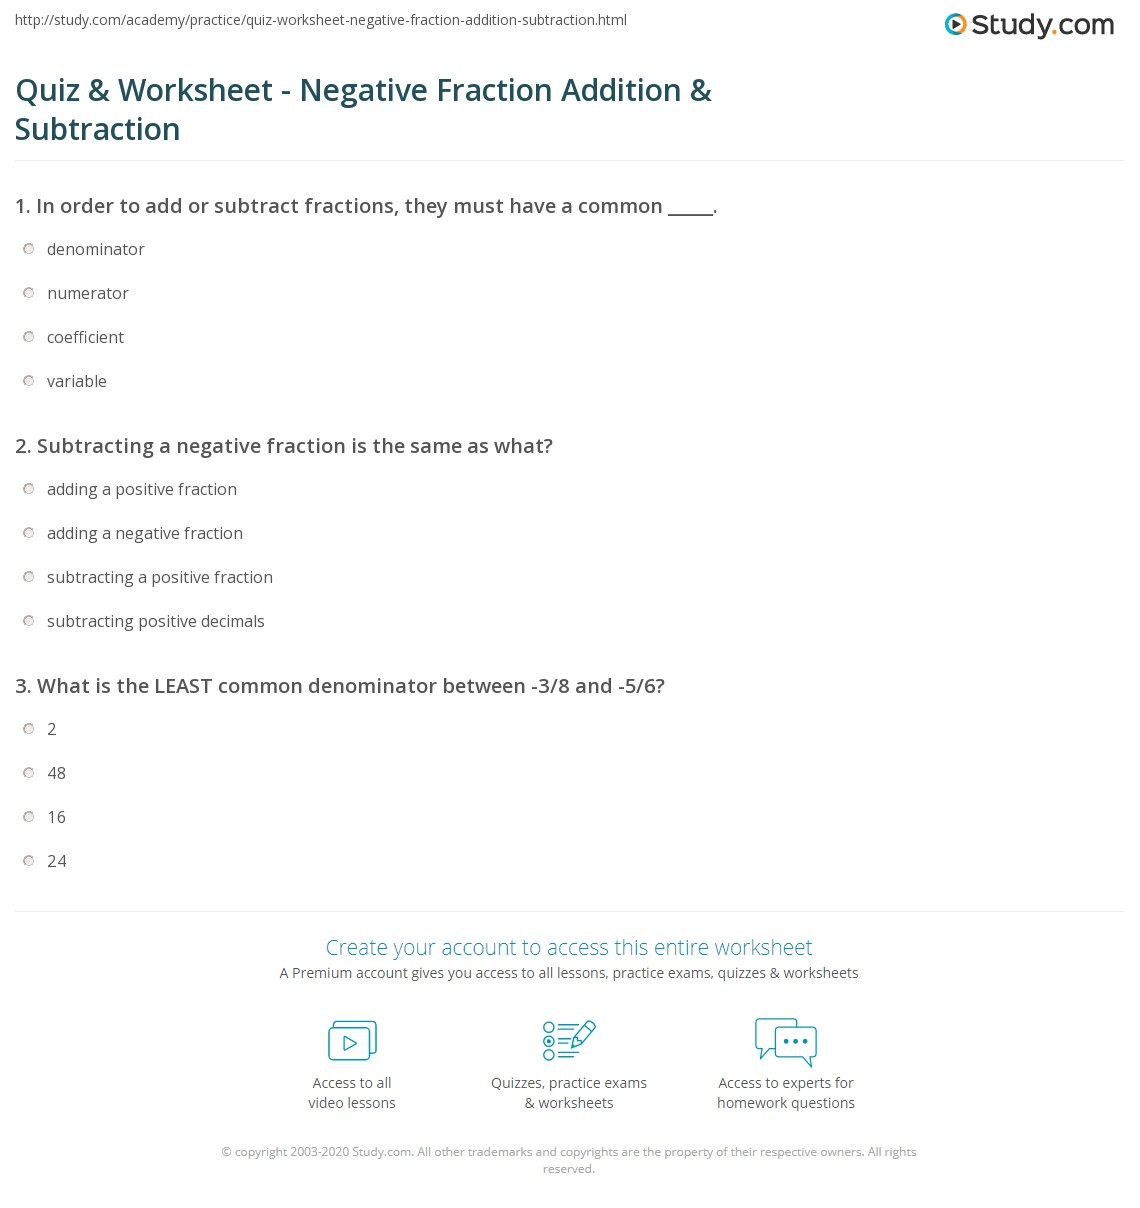 Quiz Worksheet Negative Fraction Addition Subtraction – Fractions Adding and Subtracting Worksheets